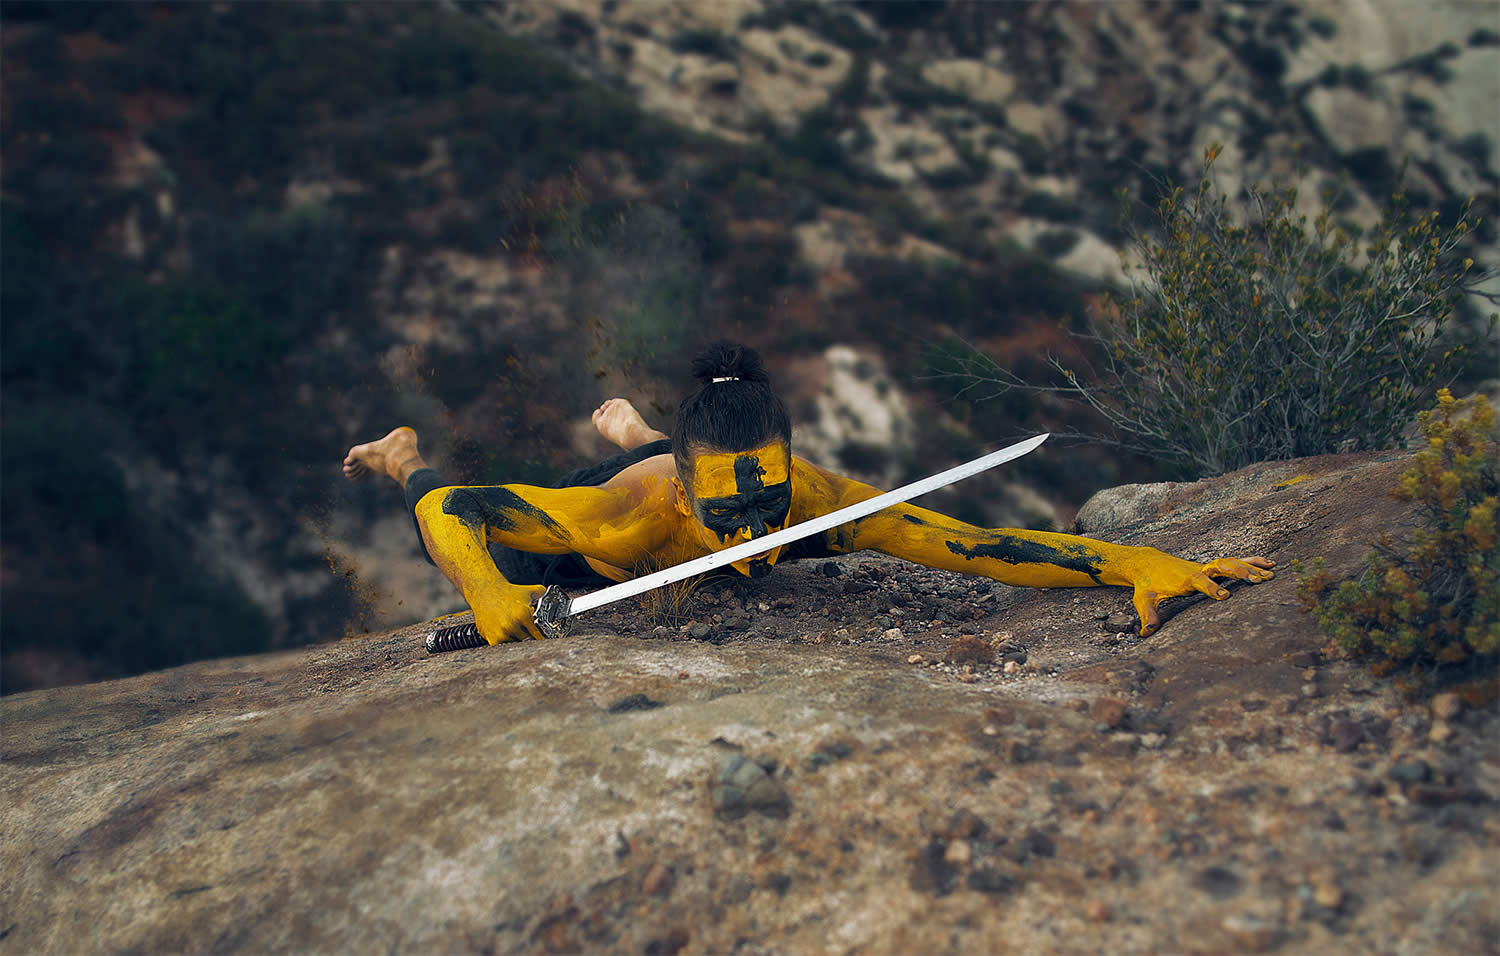 yello samurai, photo by kavan the kid